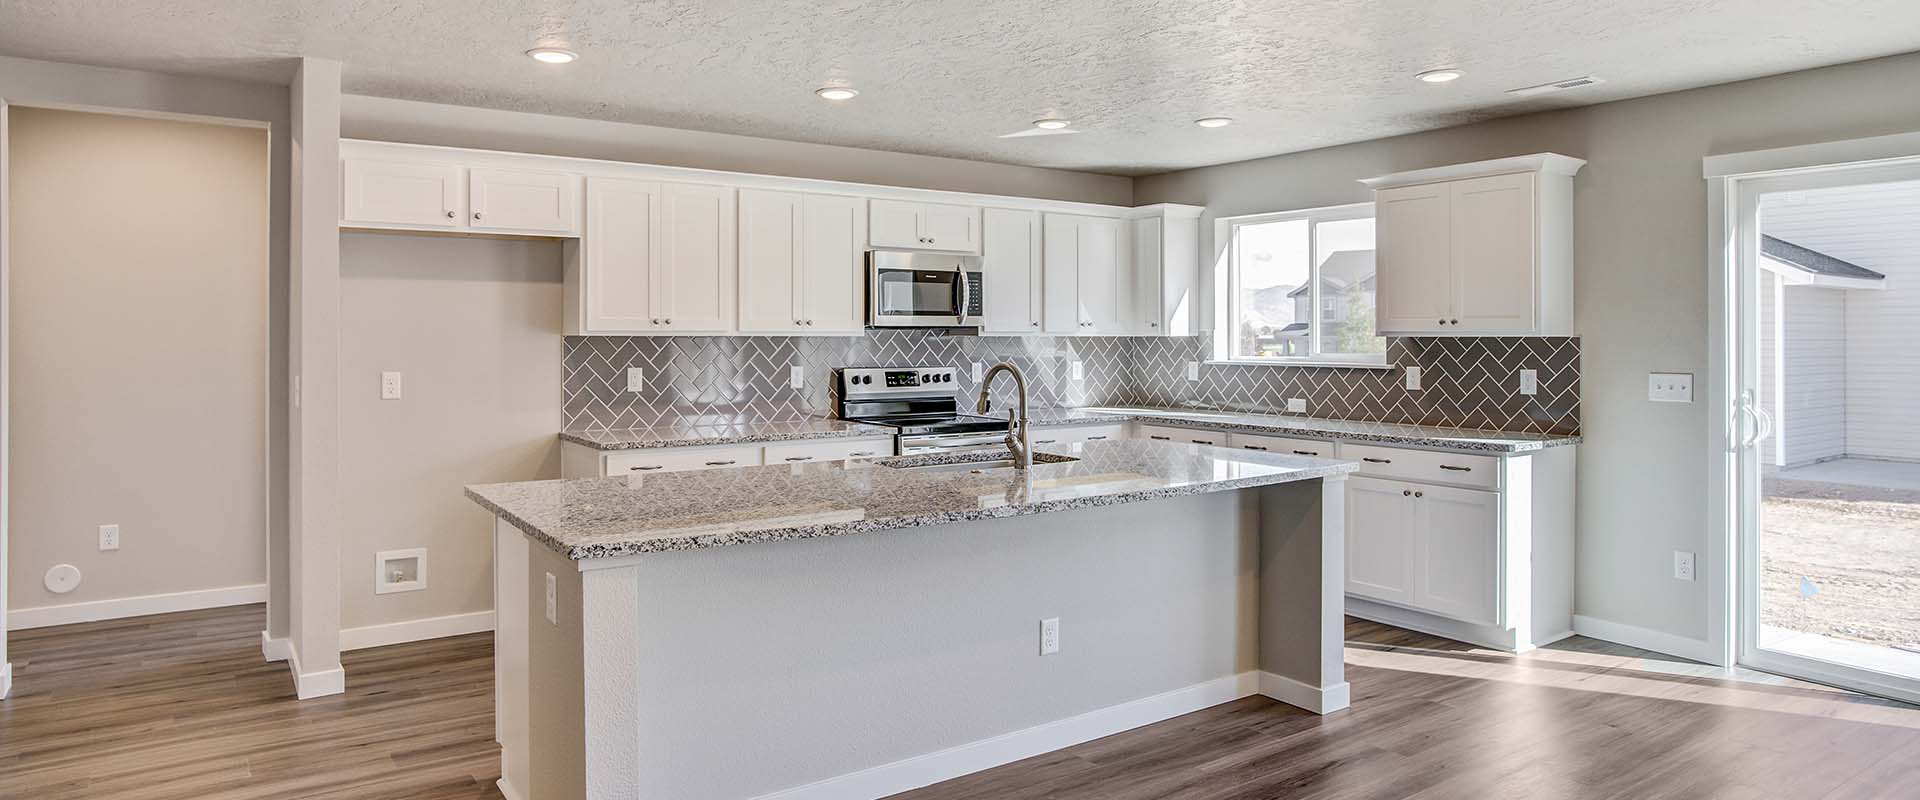 Opal-Bonus-Kitchen-new-homes-boise-idaho-hubble-homes.jpg